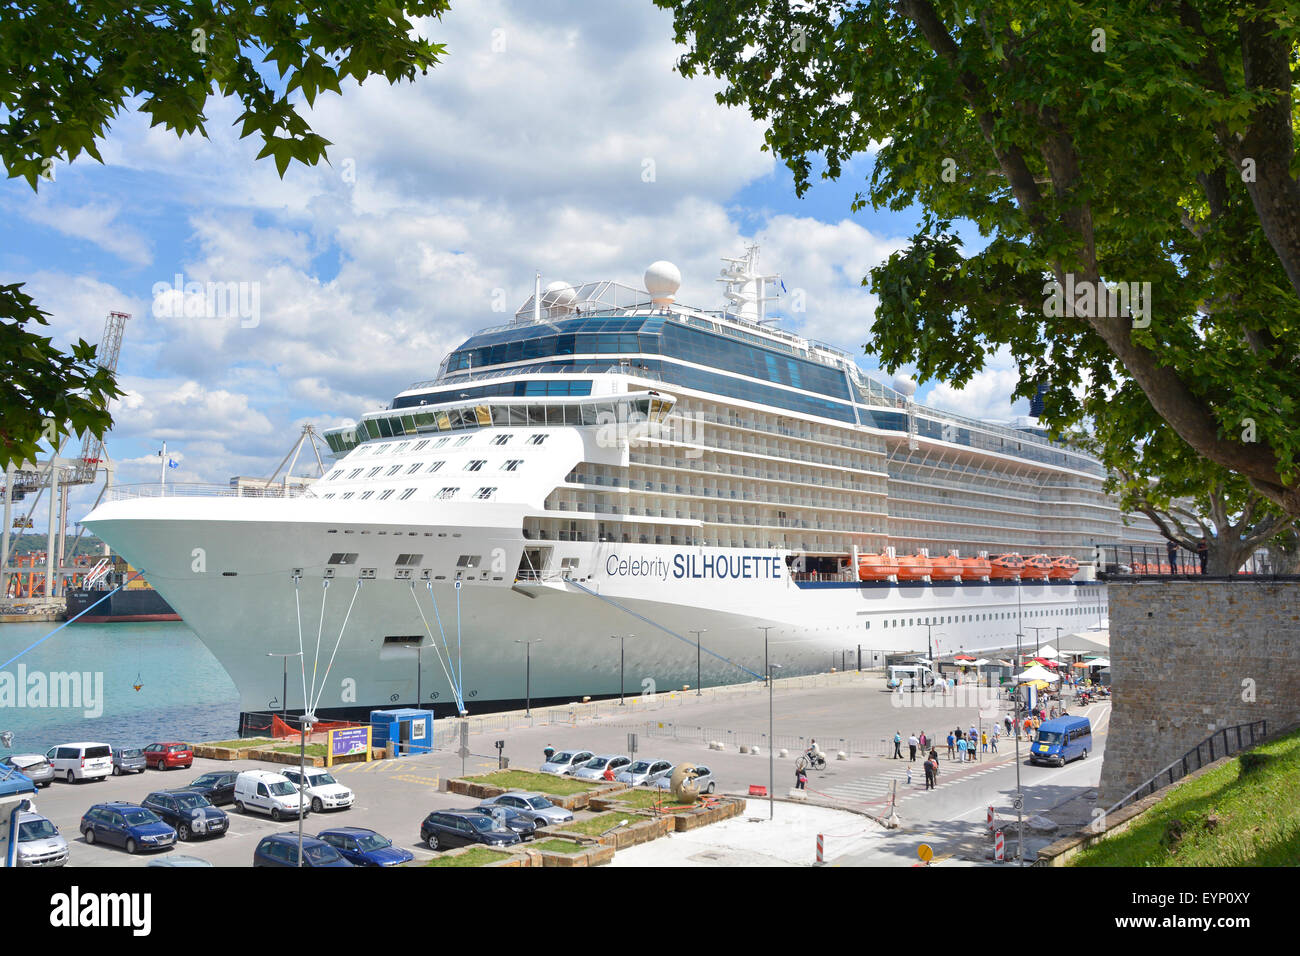 Cruise ship liner Celebrity Silhouette moored in the Port of Koper in Slovenia part of an Adriatic cruisin itinerary - Stock Image